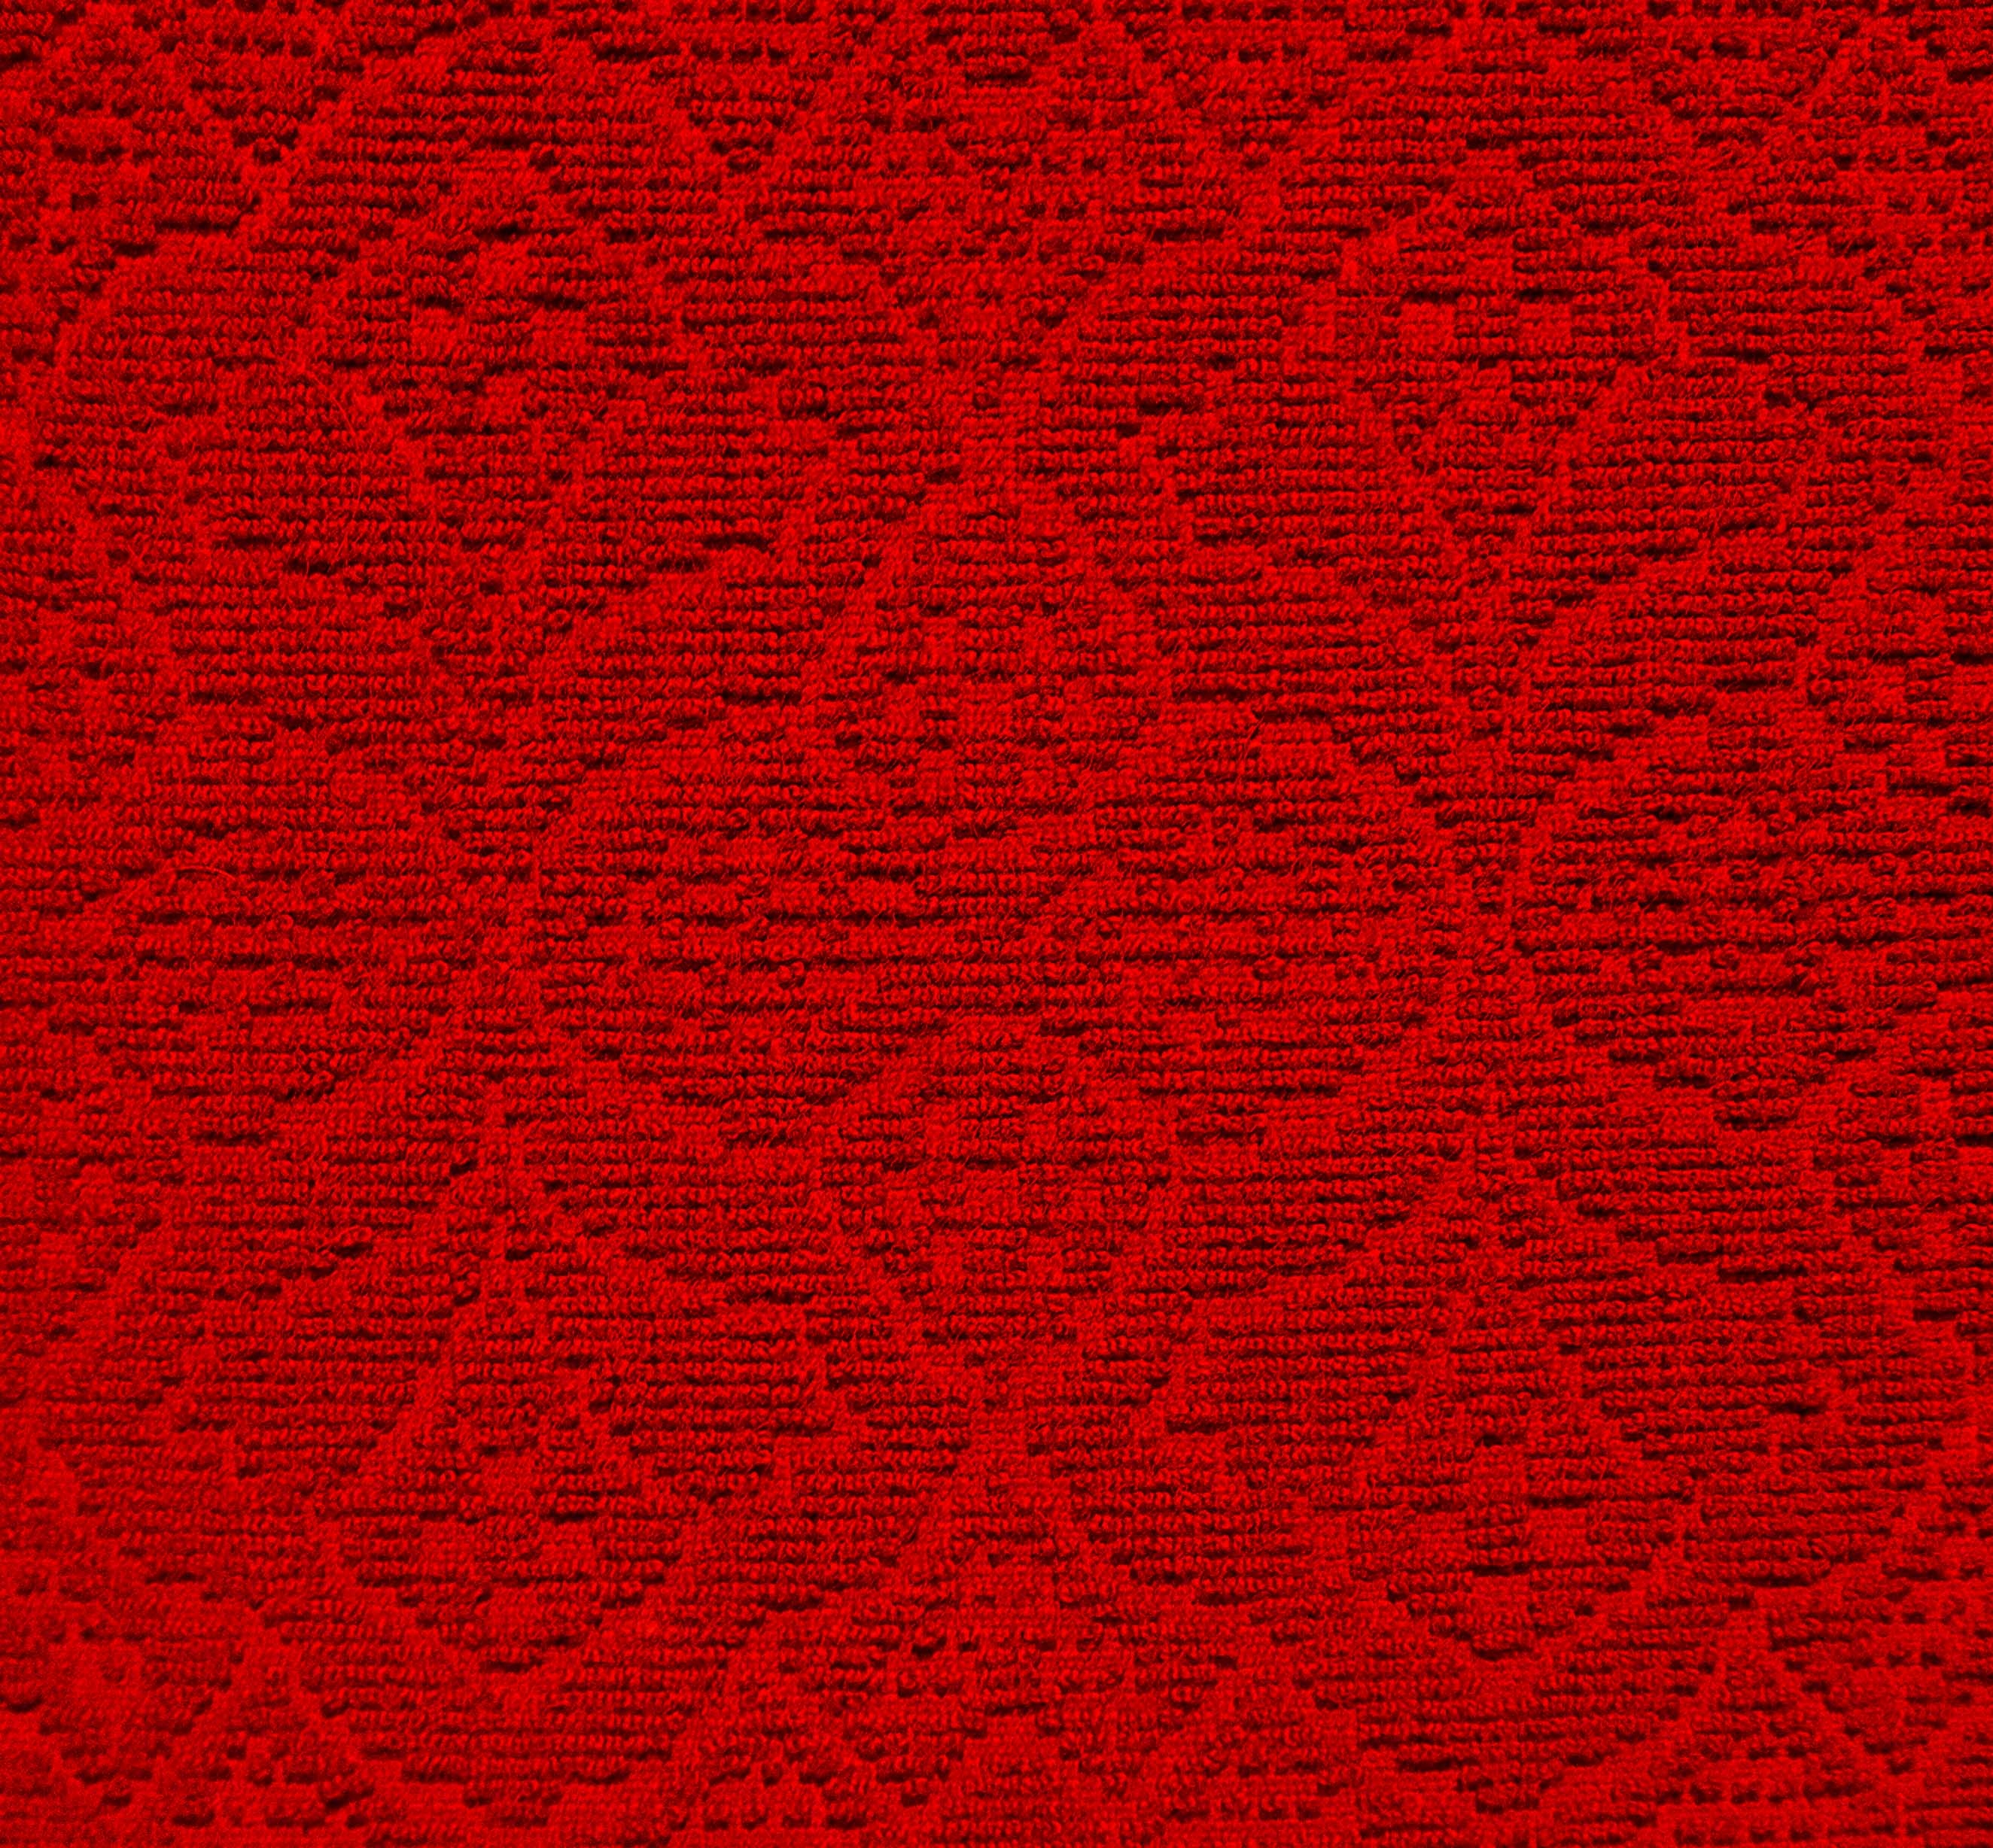 60+ Red Textures | Seamless Textures | FreeCreatives